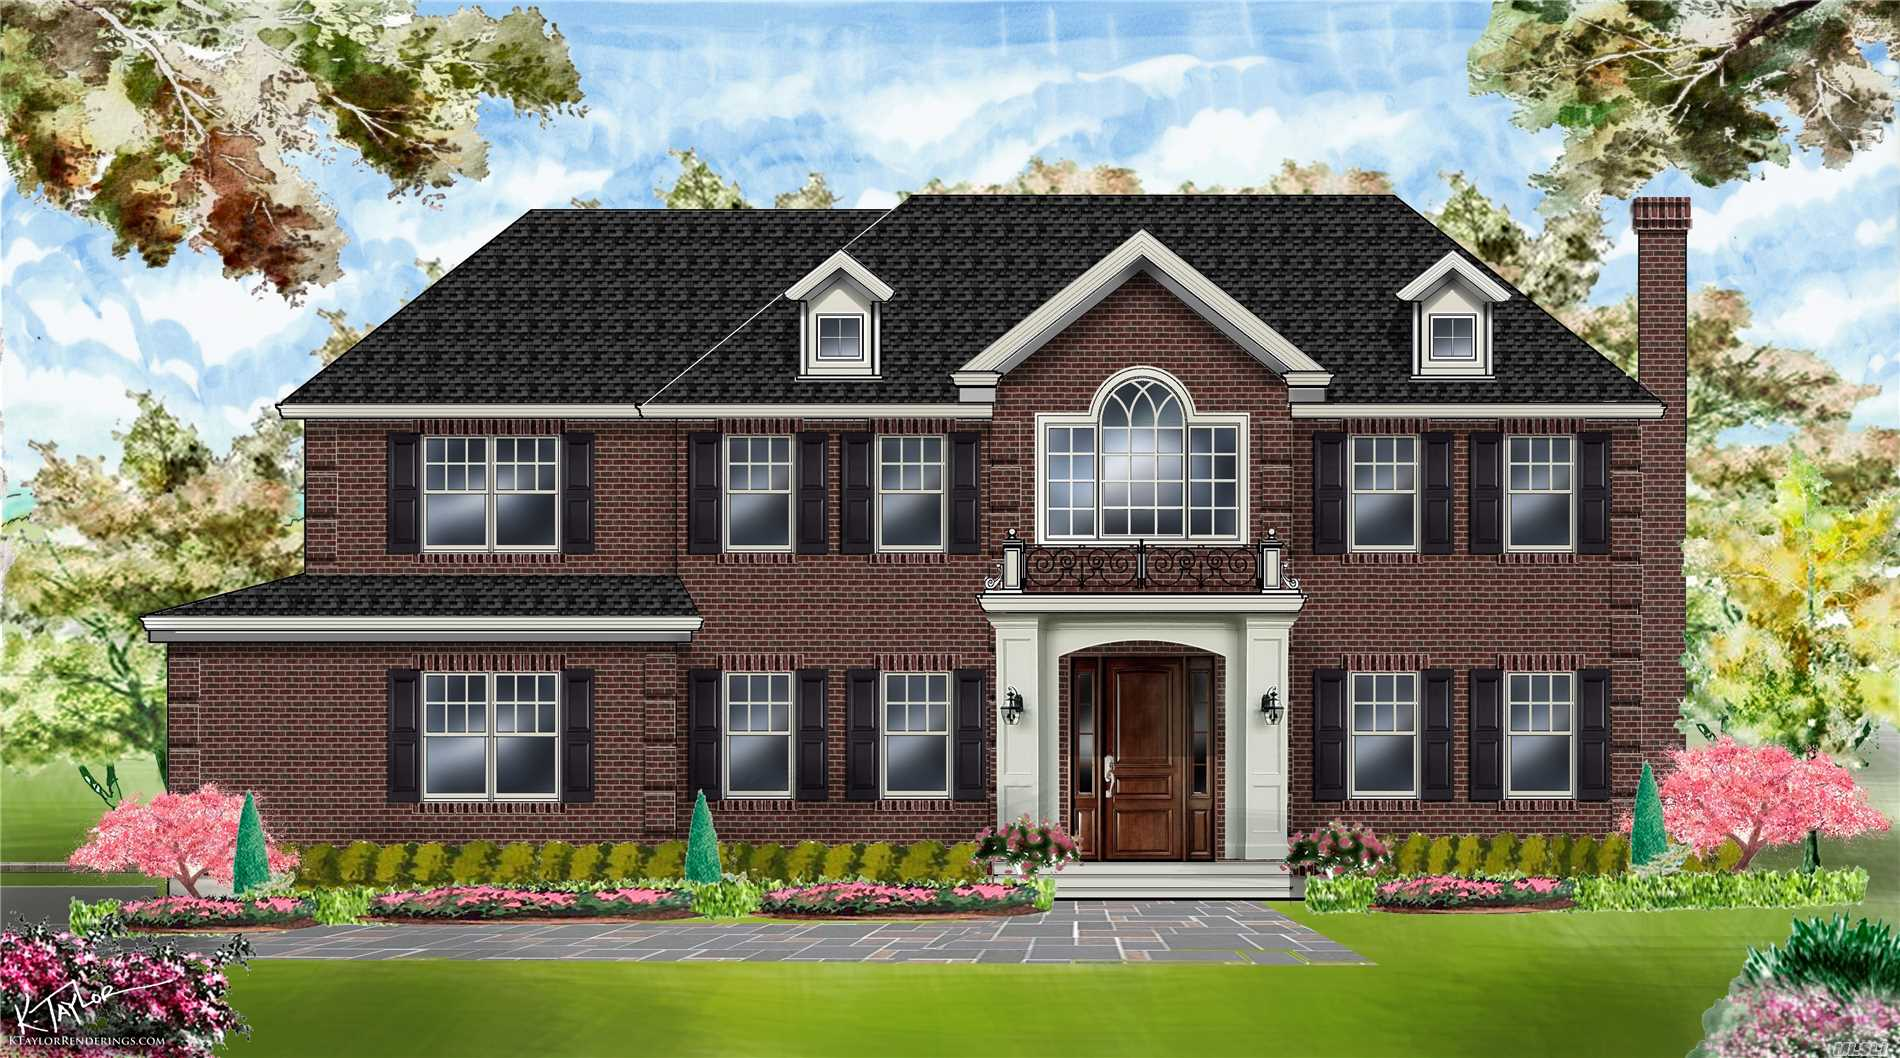 Newly Constructed Grand & Stately 6 bedroom, 6.5 bath Brick Center Hall Colonial offering 4540 sq ft of luxury plus 2000 sq ft finished lower level. Opportunity to work with builder now to make selections on interior finishes with late summer completion. Radiant heated baths. The choices are endless to create your dream home.  All on .34 acre in the heart of Strathmore. Walking distance to Americana shopping & restaurants .